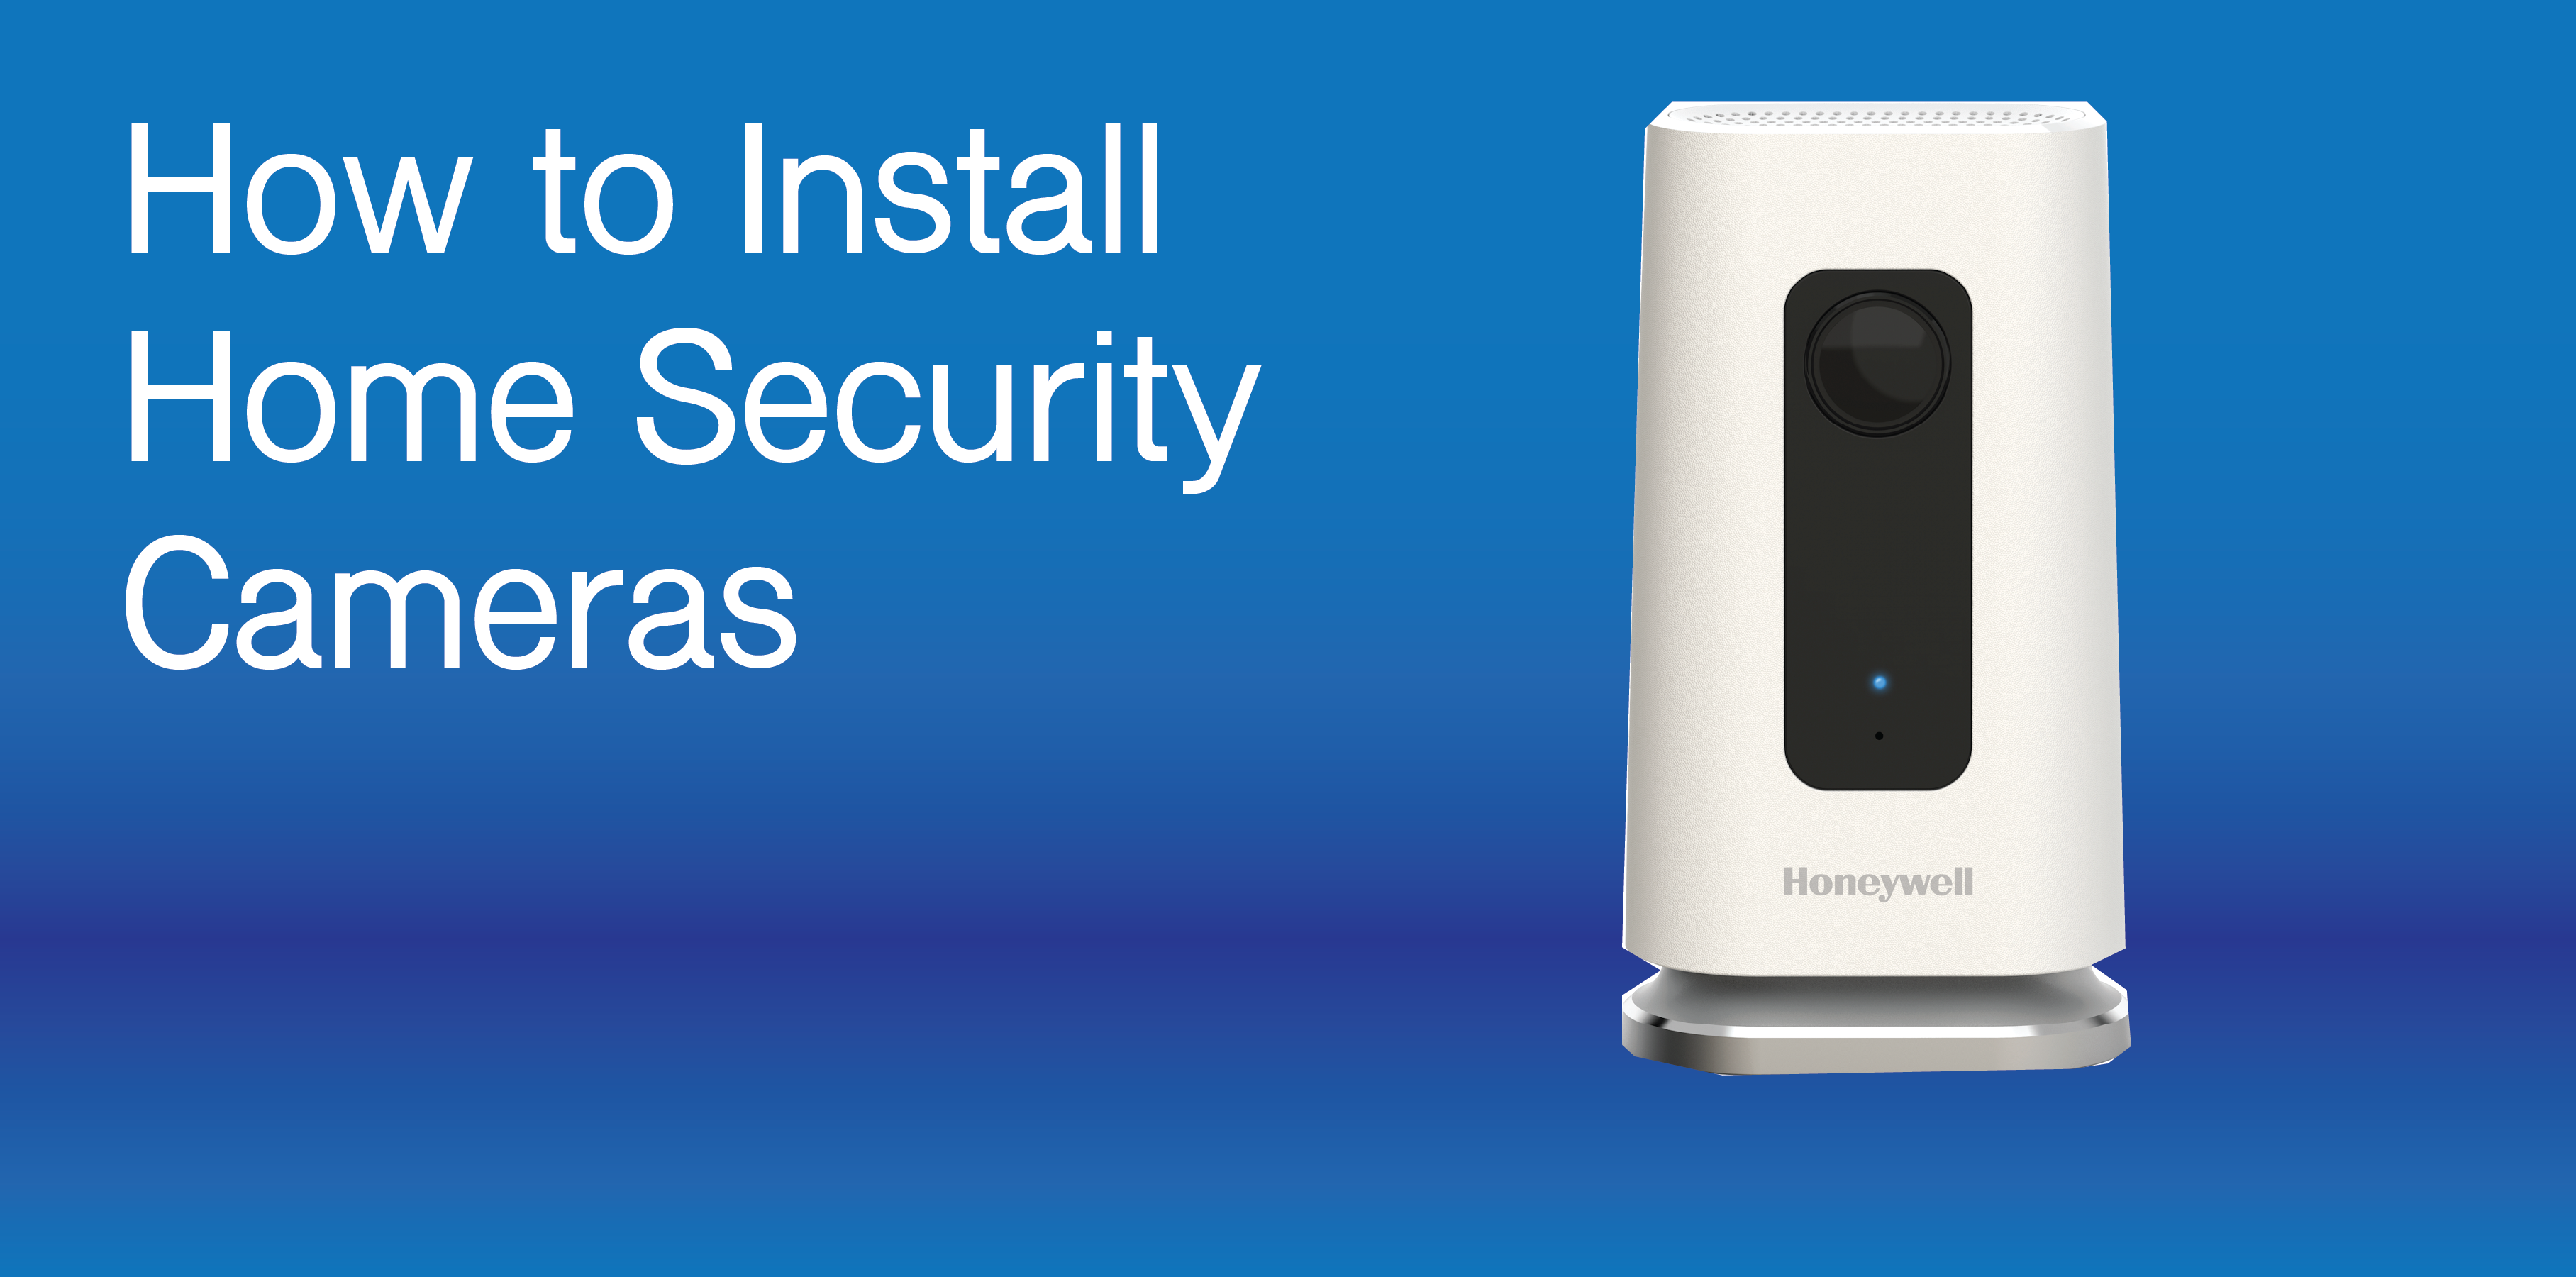 Doyle security blog for installing security cameras in your home including doing it yourself so how do you go about the process of creating your own surveillance system freerunsca Choice Image